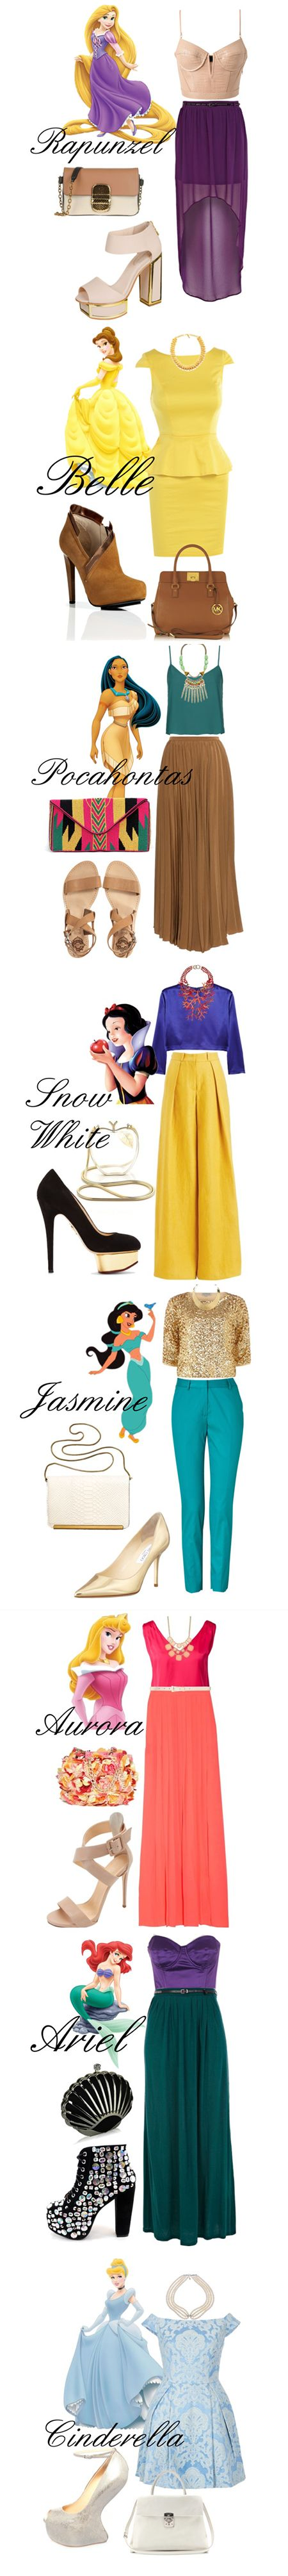 Disney Princess Inspired Outfits